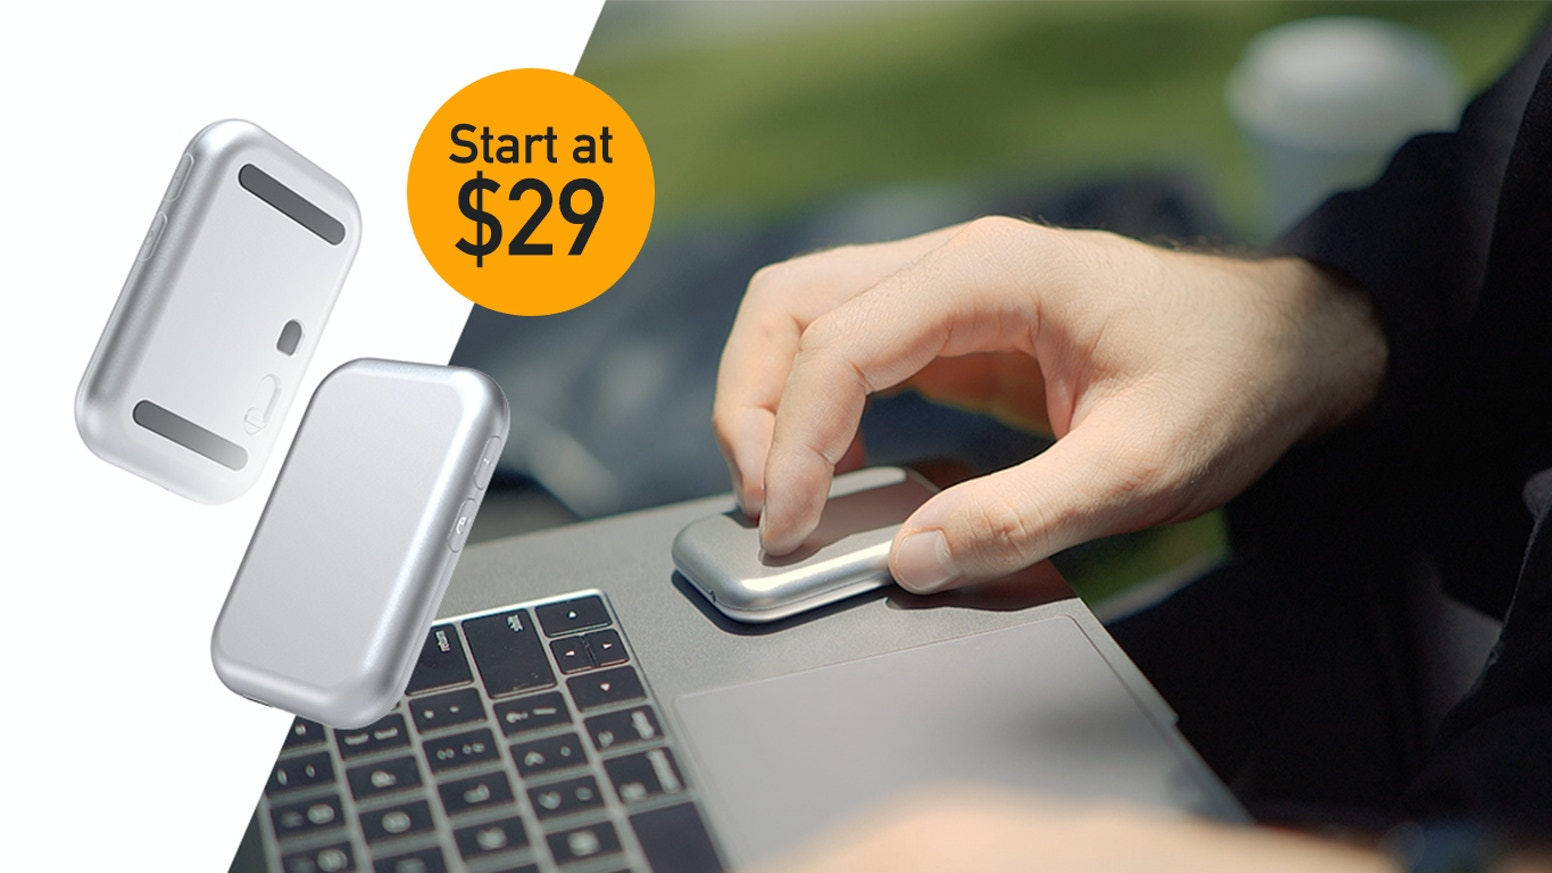 Full-function mouse, touchpad and presenter for Mac, Windows, iPad, Tablet, Smartphone and Smart TV.